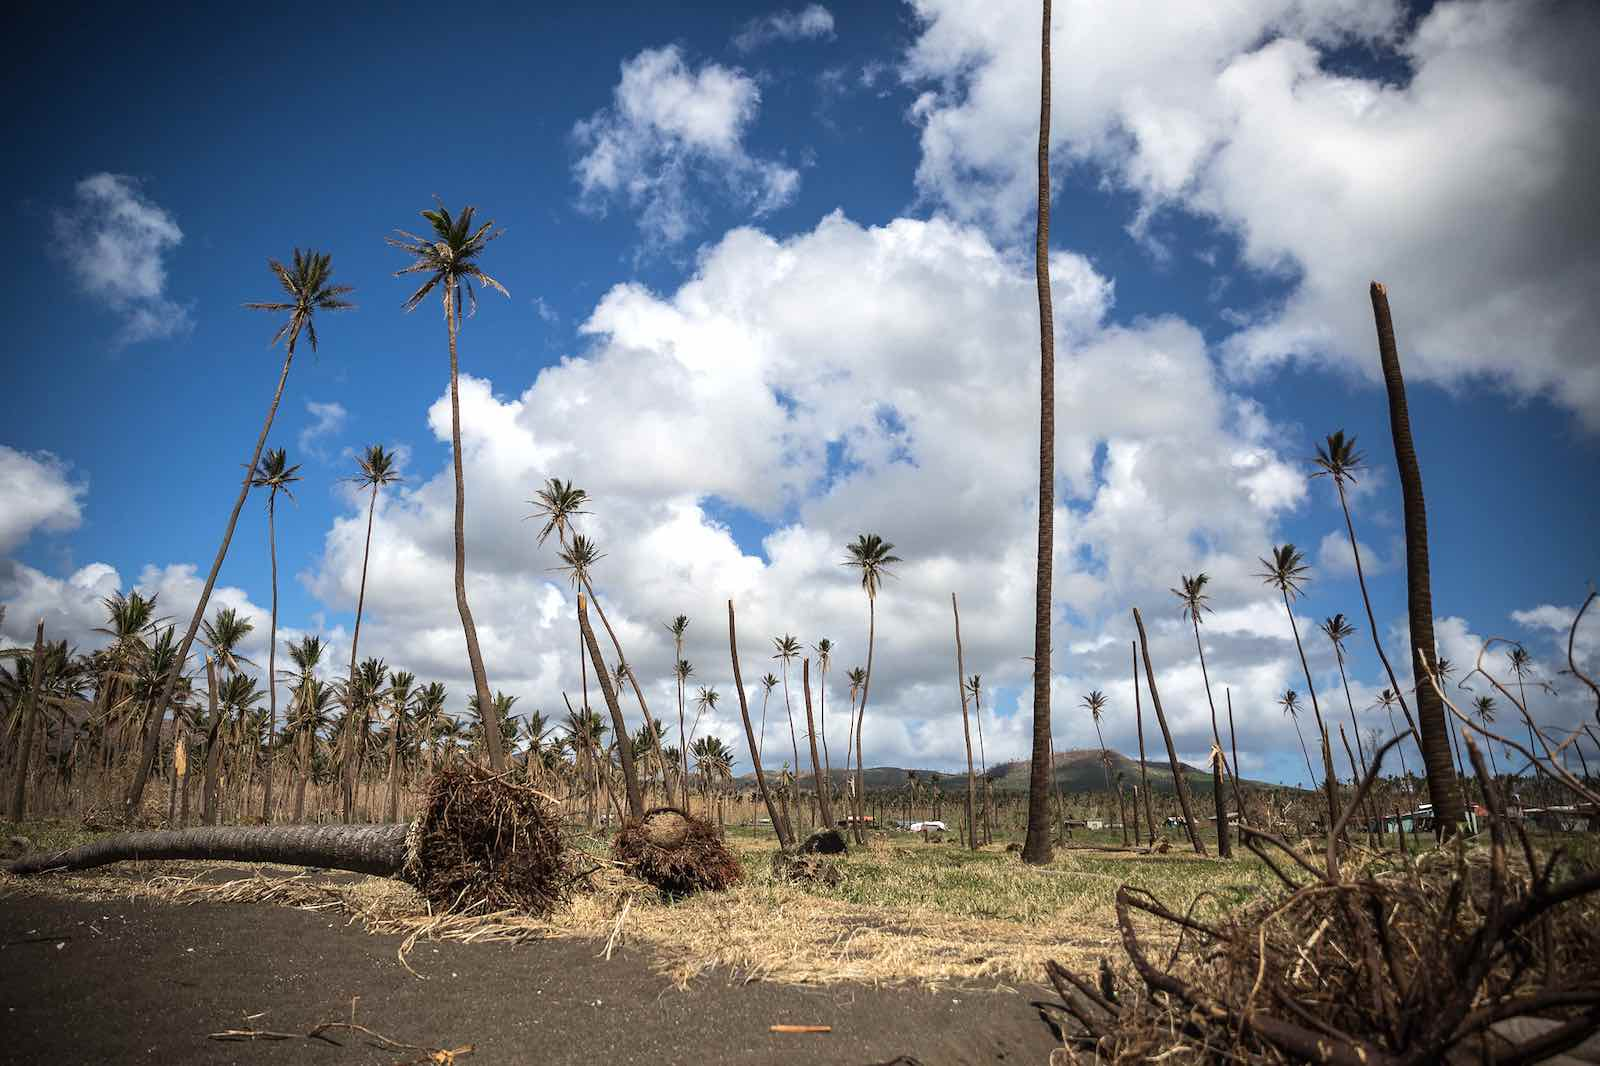 Aftermath of Cyclone Winston, Fiji, 2016 (Photo: GFDRR/World Bank DRM/Flickr)